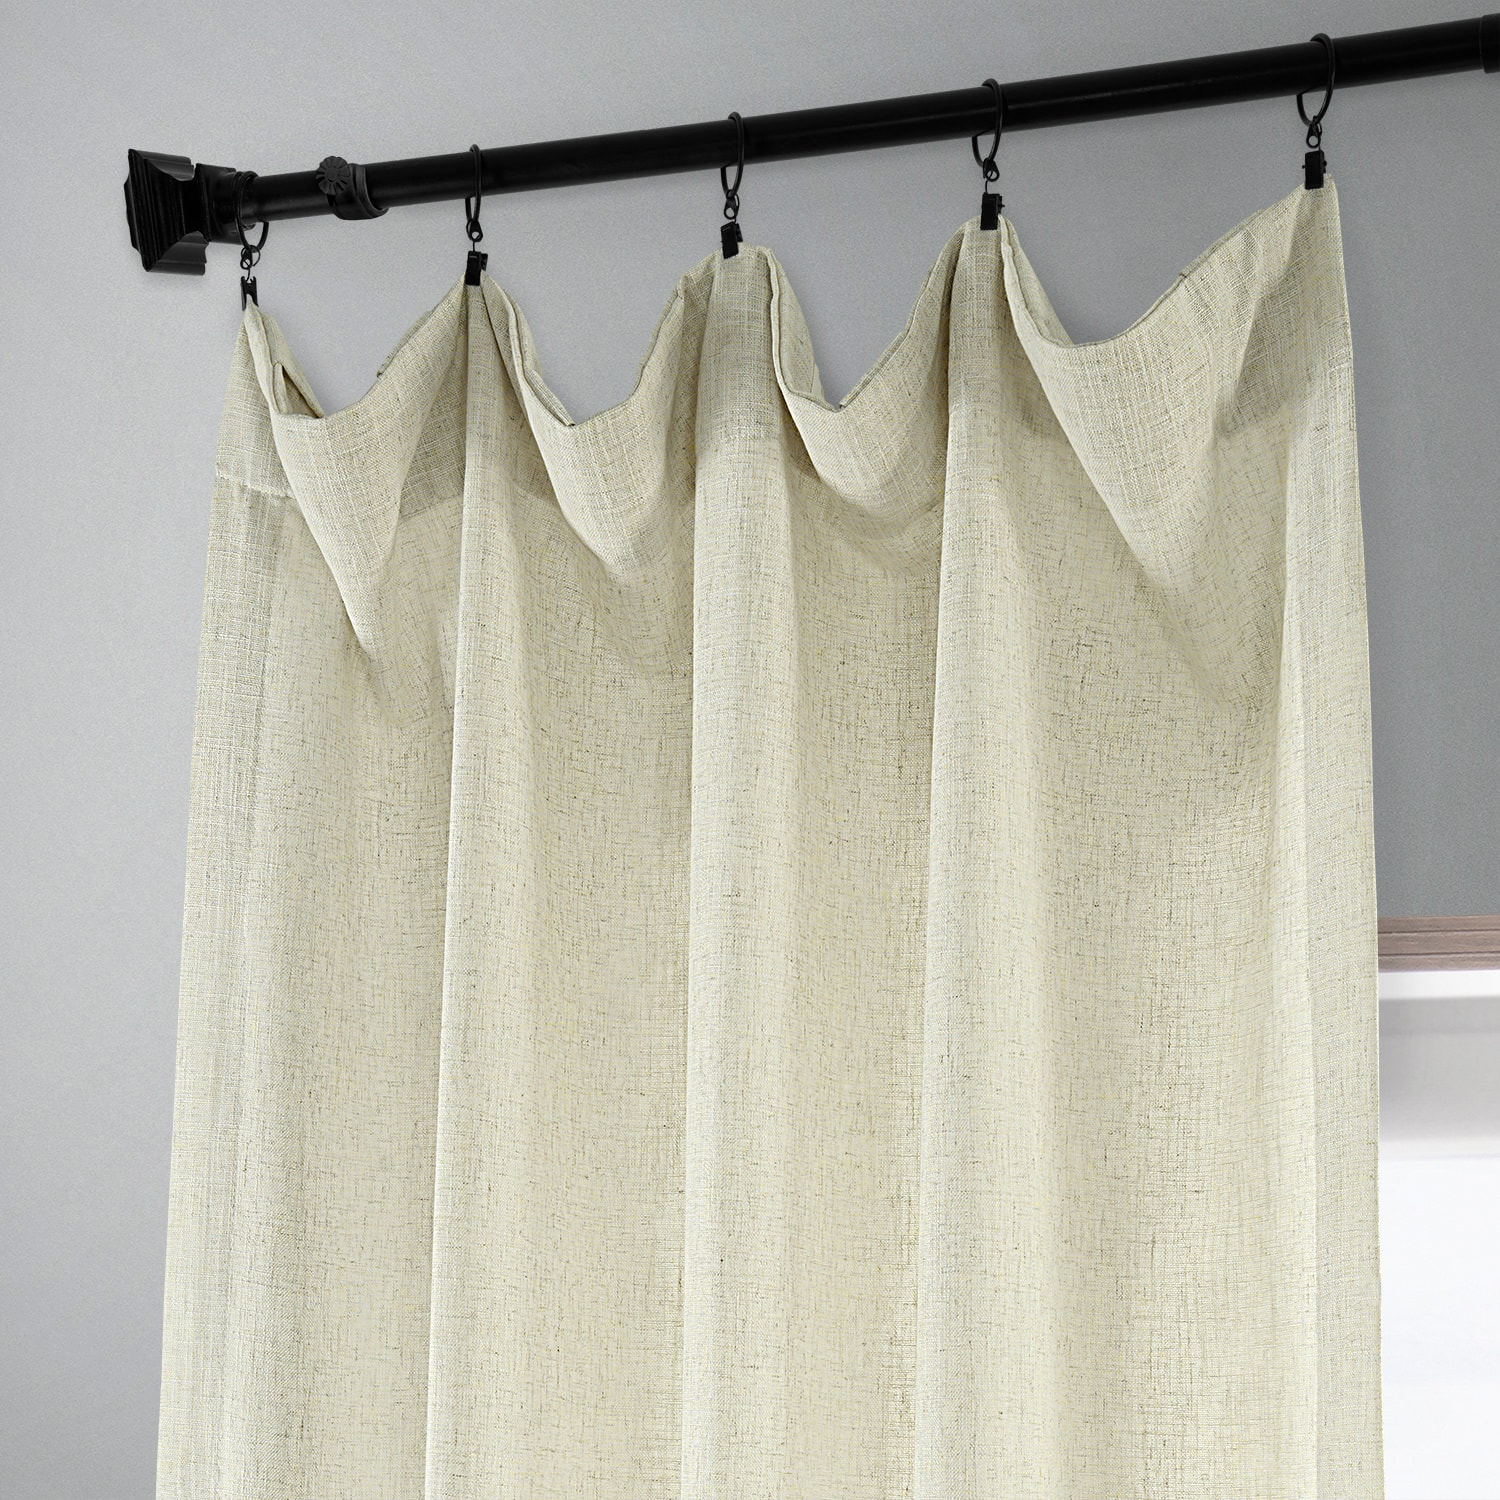 Barley Heavy Faux Linen Curtain